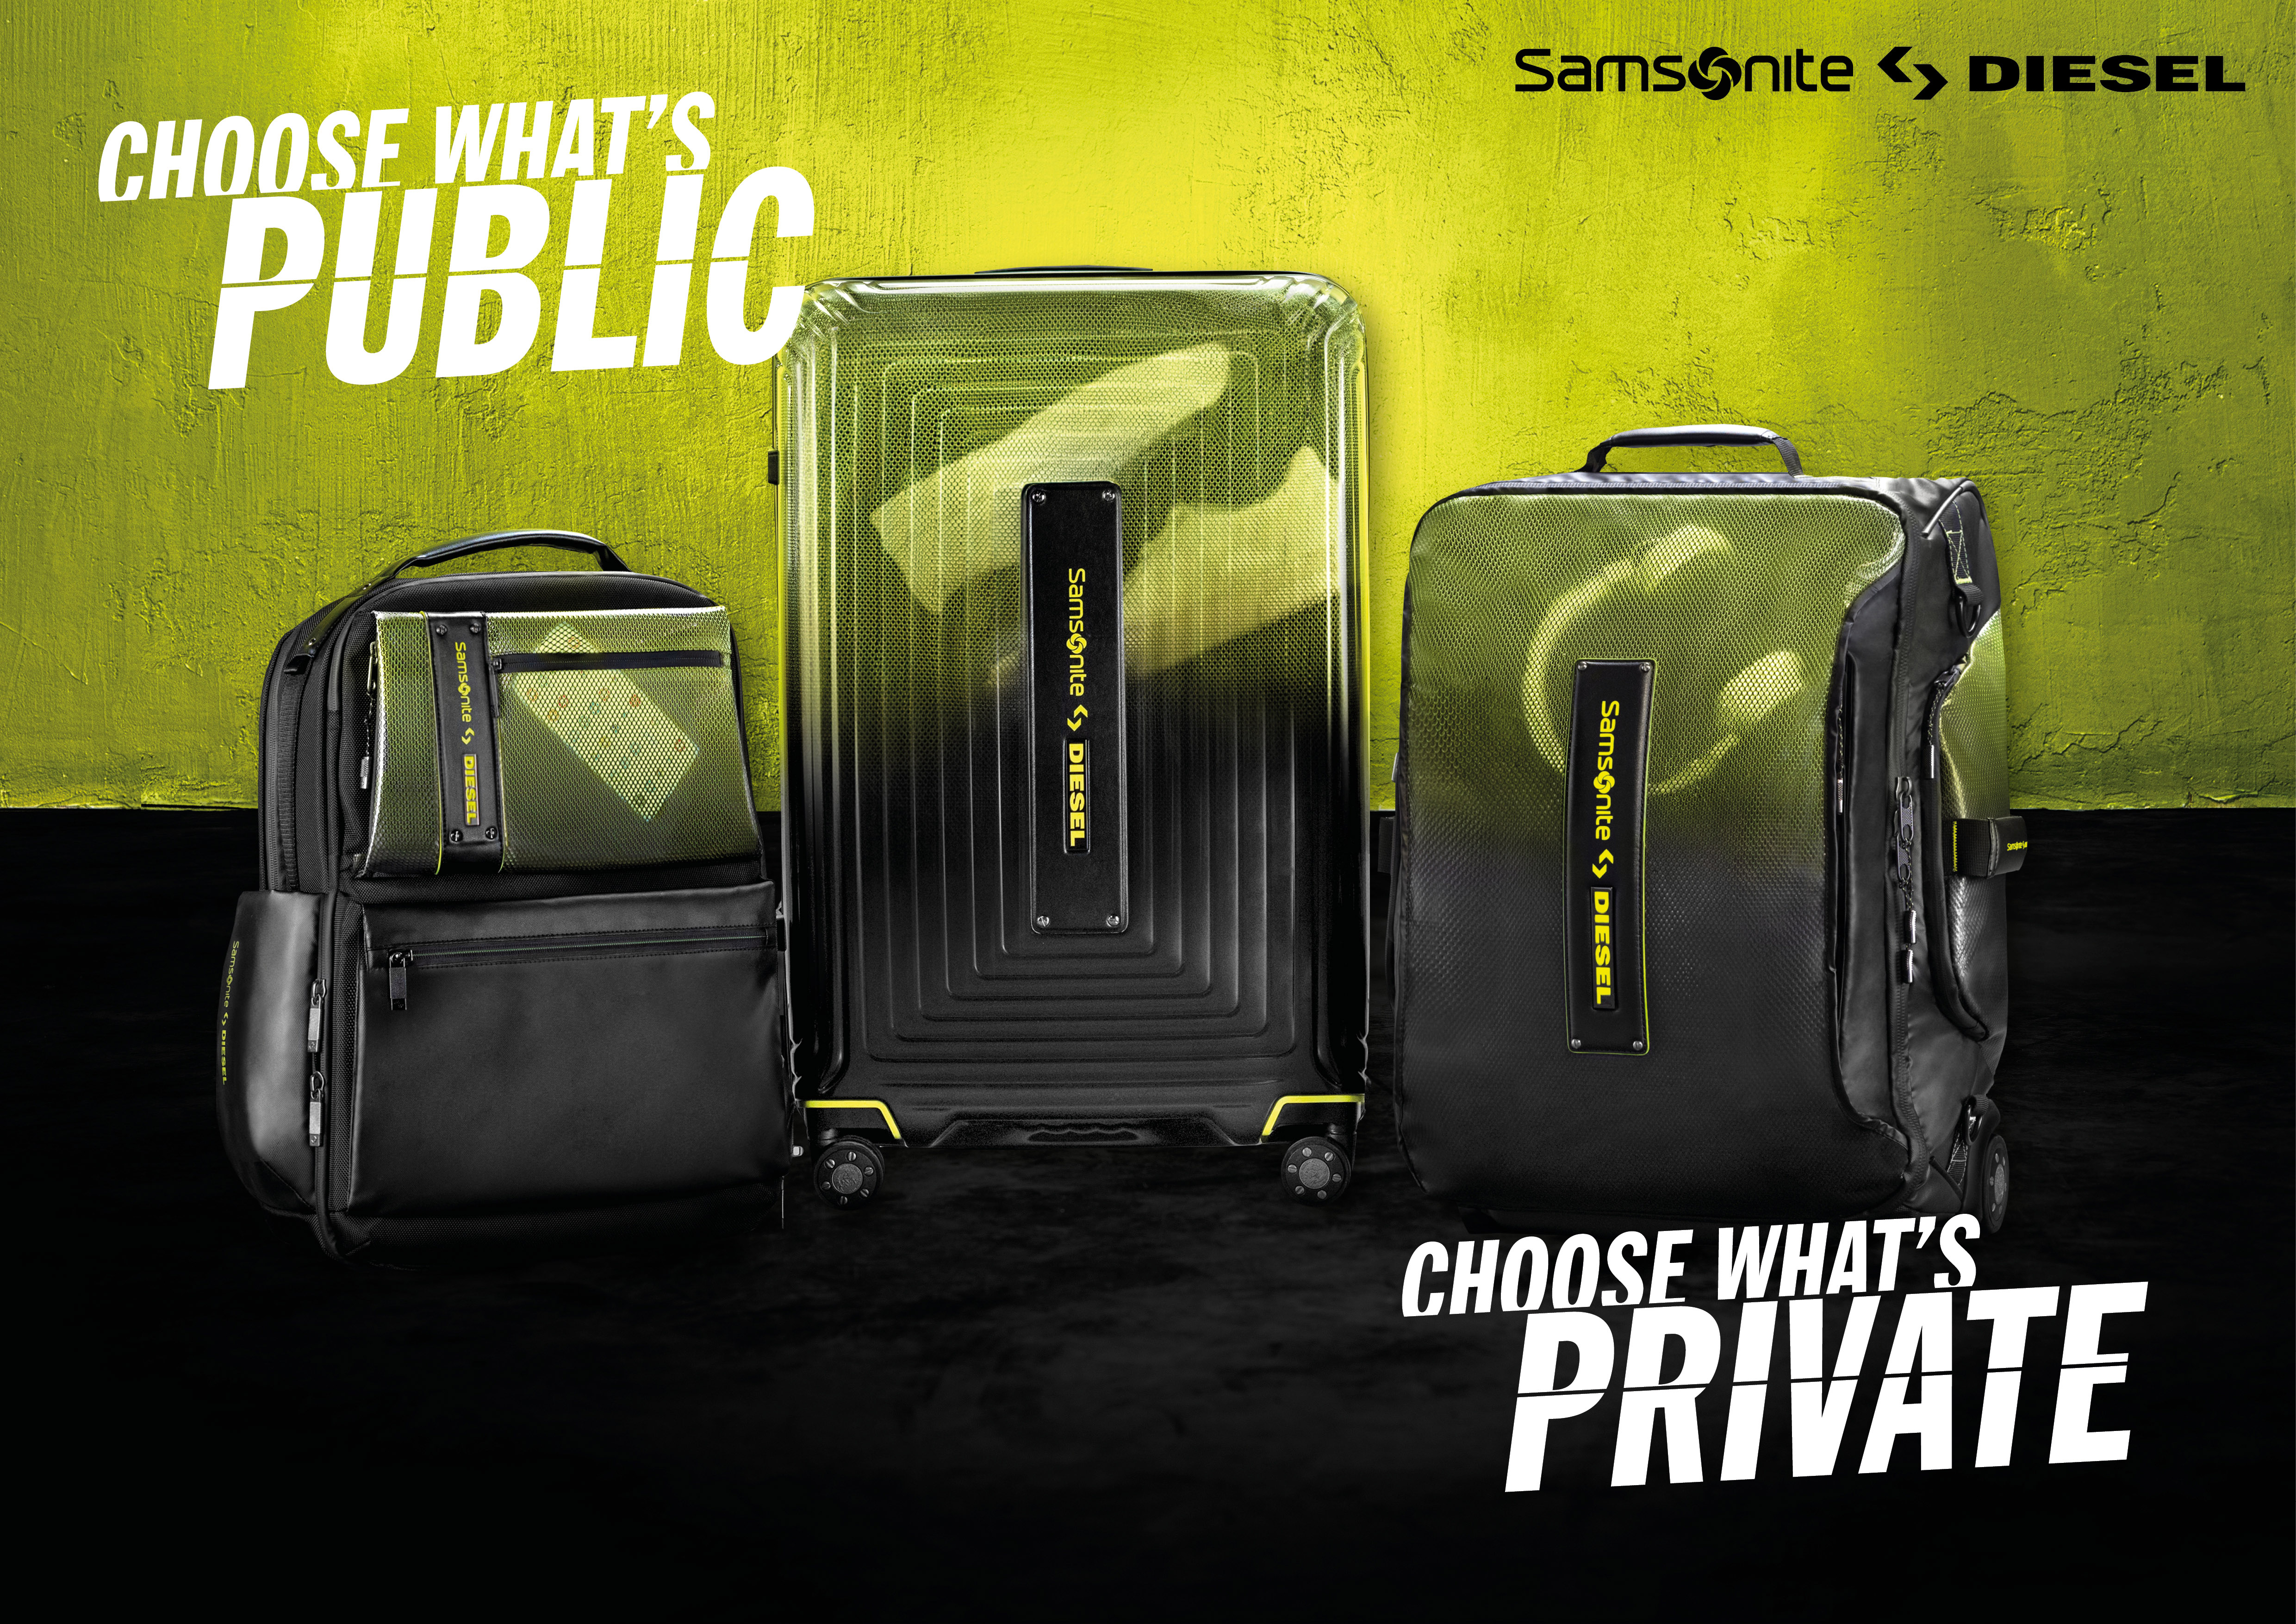 Diesel & Samsonite Collection 'Choose What's' Campaign by Small Agency